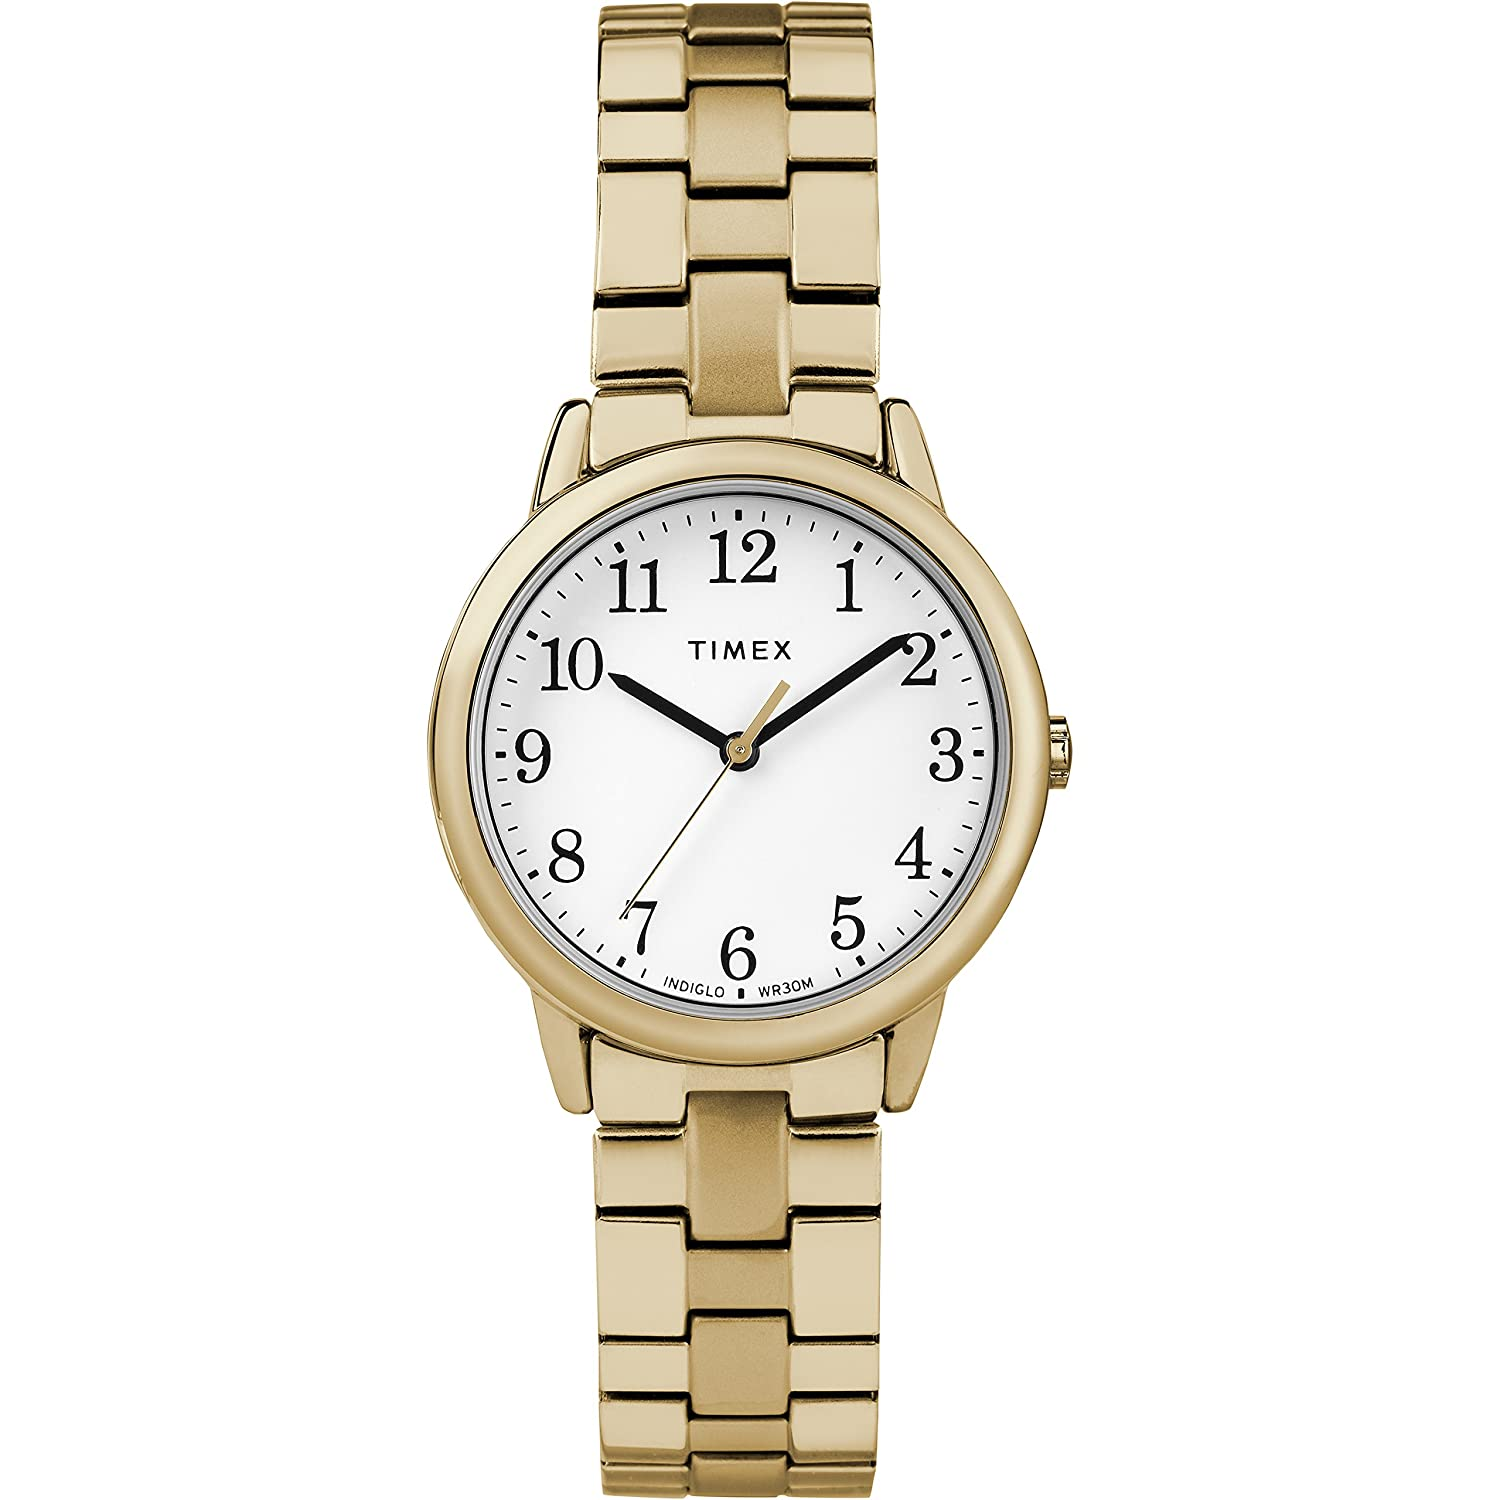 4320d3beacf4 Amazon.com  Timex Women s TW2R58900 Easy Reader 31mm Gold-Tone Stainless  Steel Expansion Band Watch  Watches